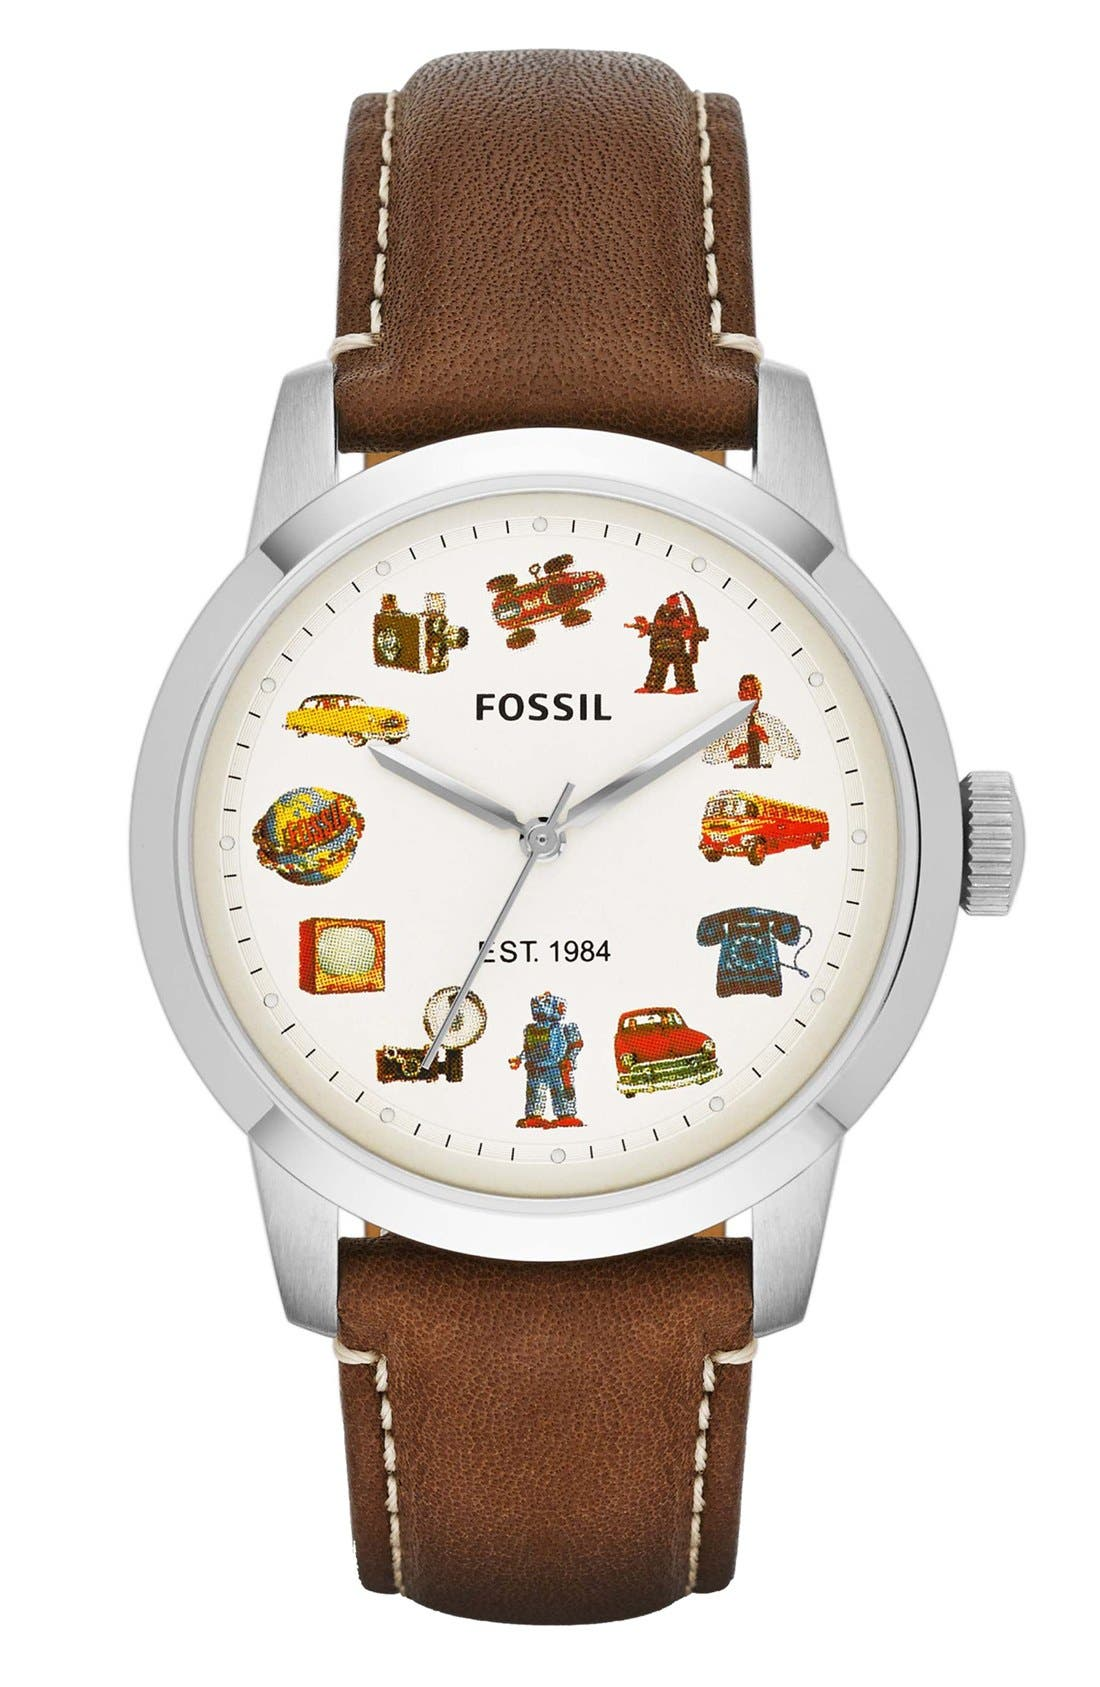 Main Image - Fossil 'Townsman' Graphic Index Leather Strap Watch, 40mm (Limited Edition)